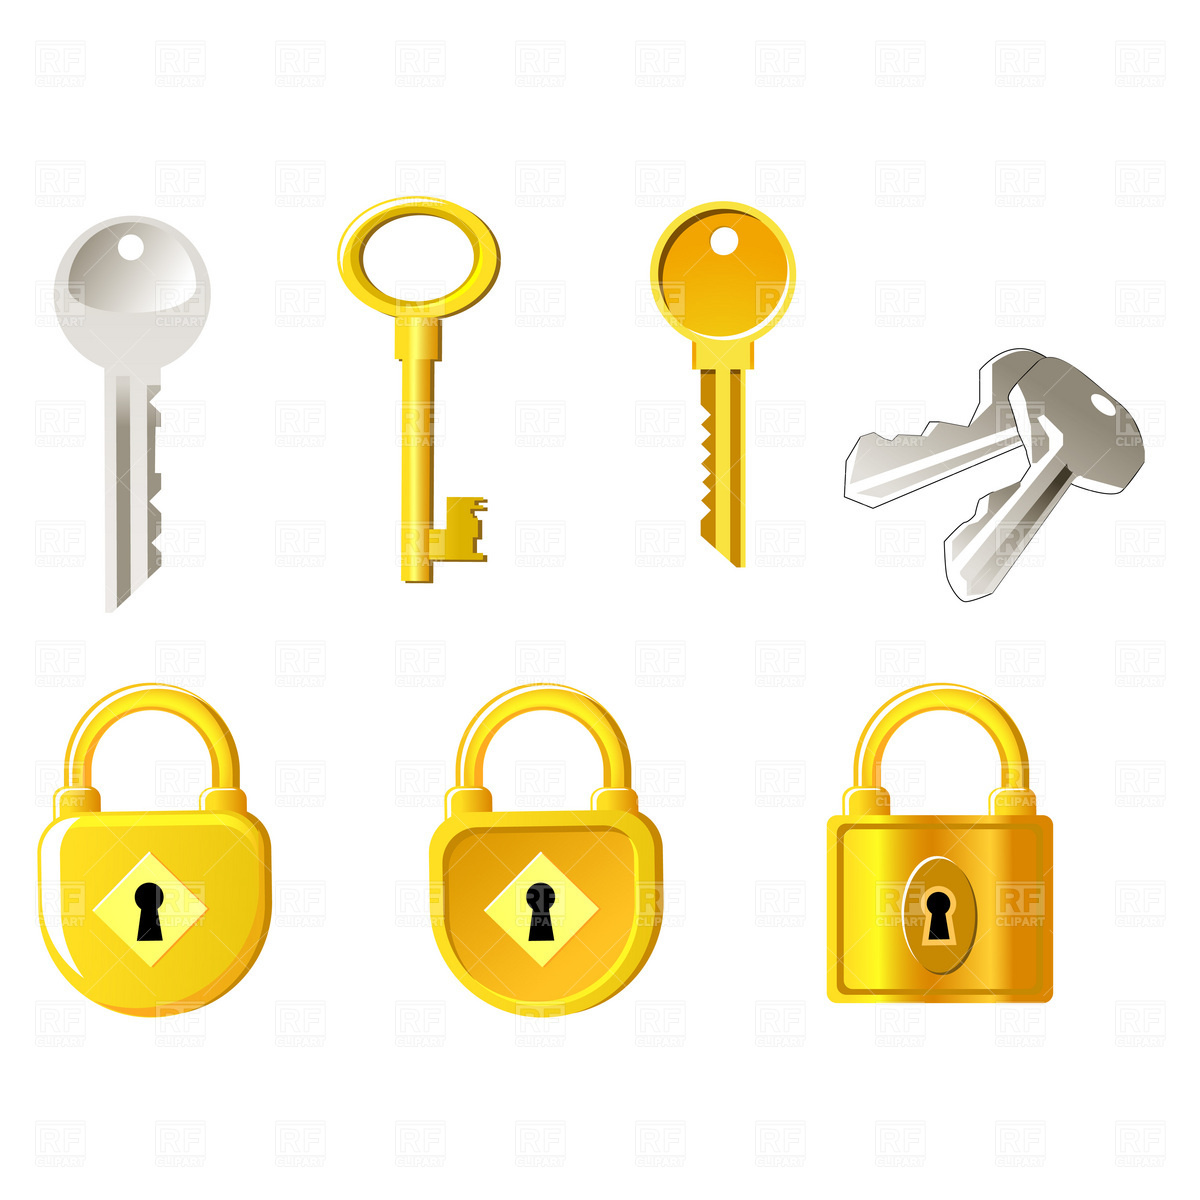 Locks and keys Vector Image #1845.